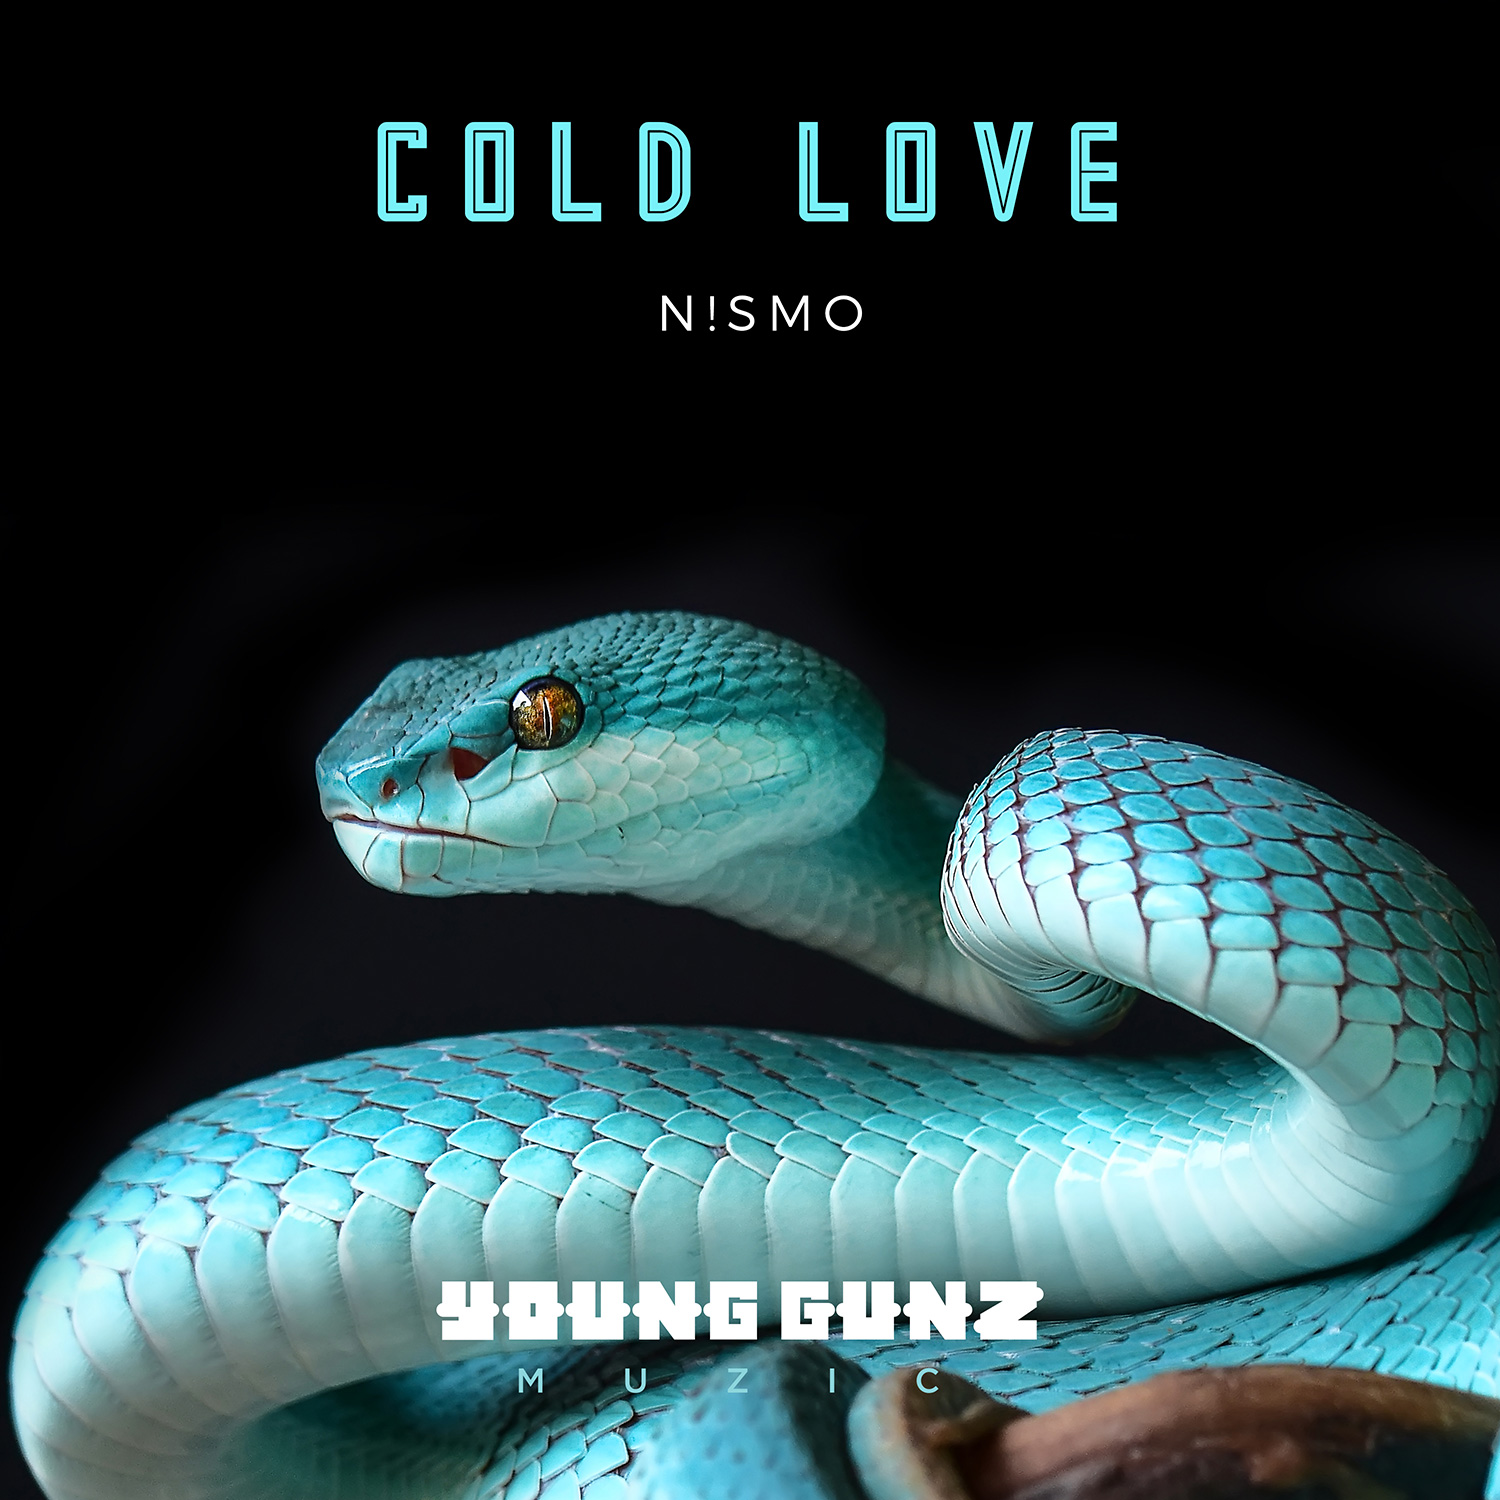 N!smo_coldlove_cover_01